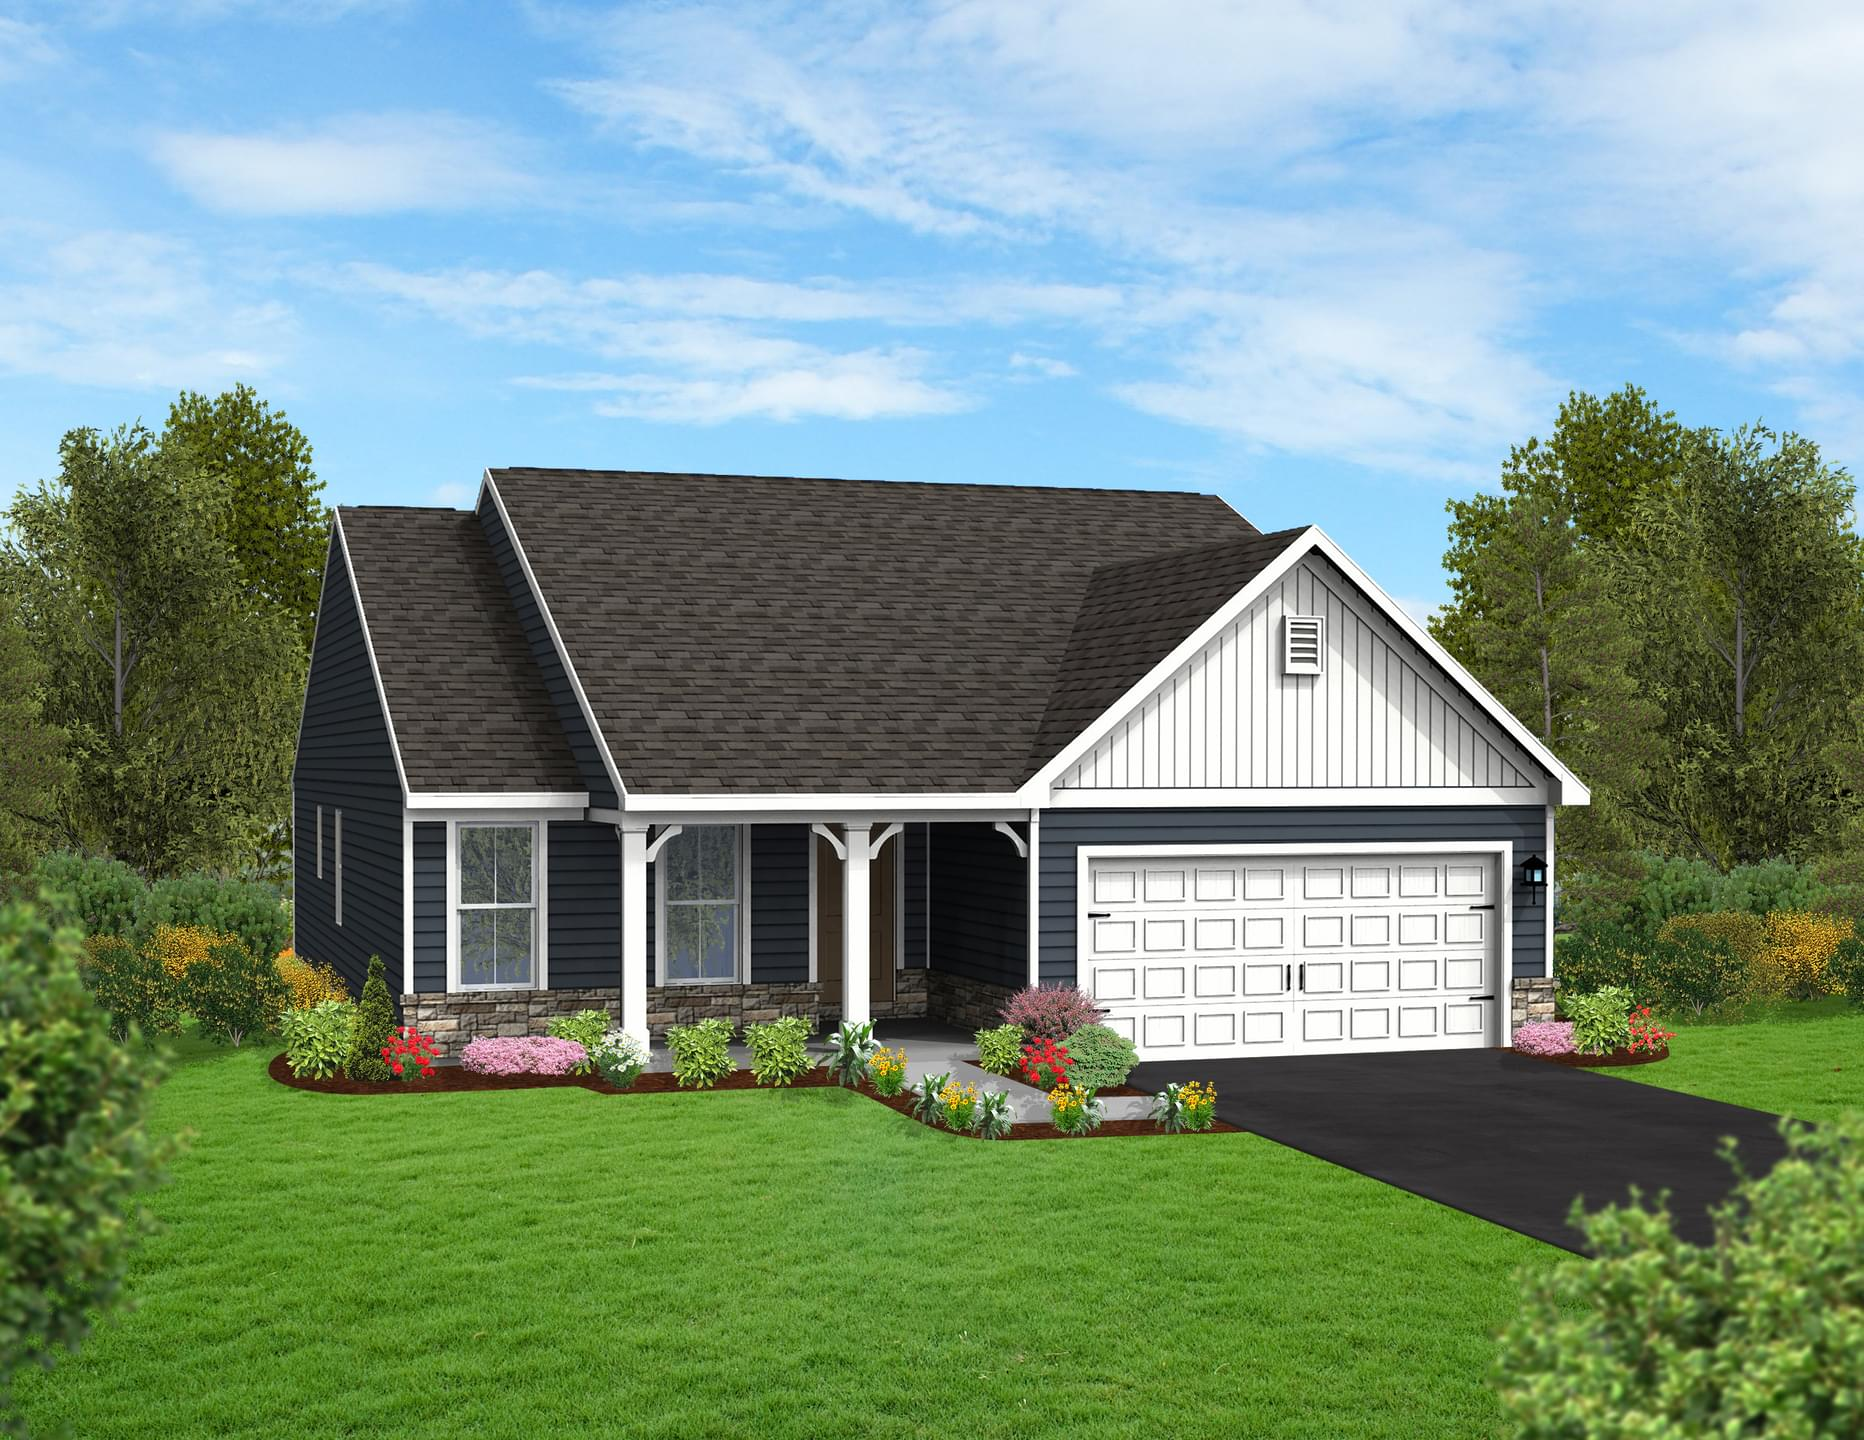 Berks Homes Elevation Image Merrimac